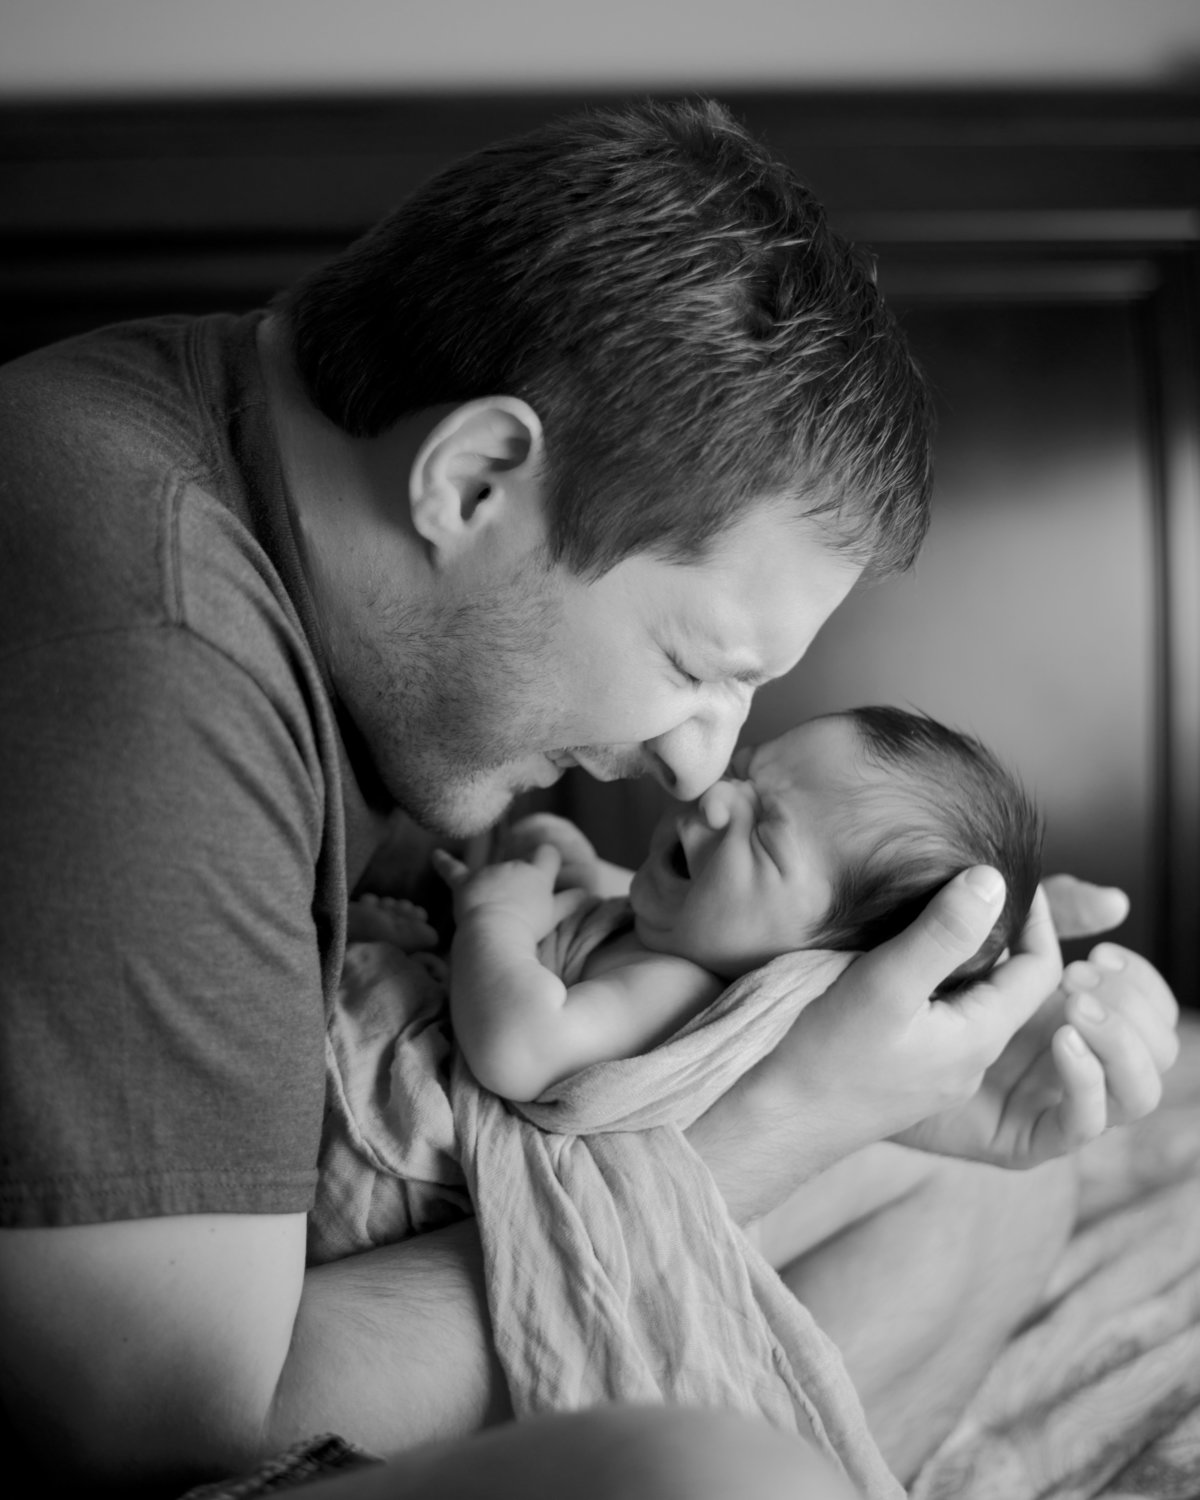 Black and White Lifestyle Newborn Photography by Erin Tetterton Photography, Alexandria VA